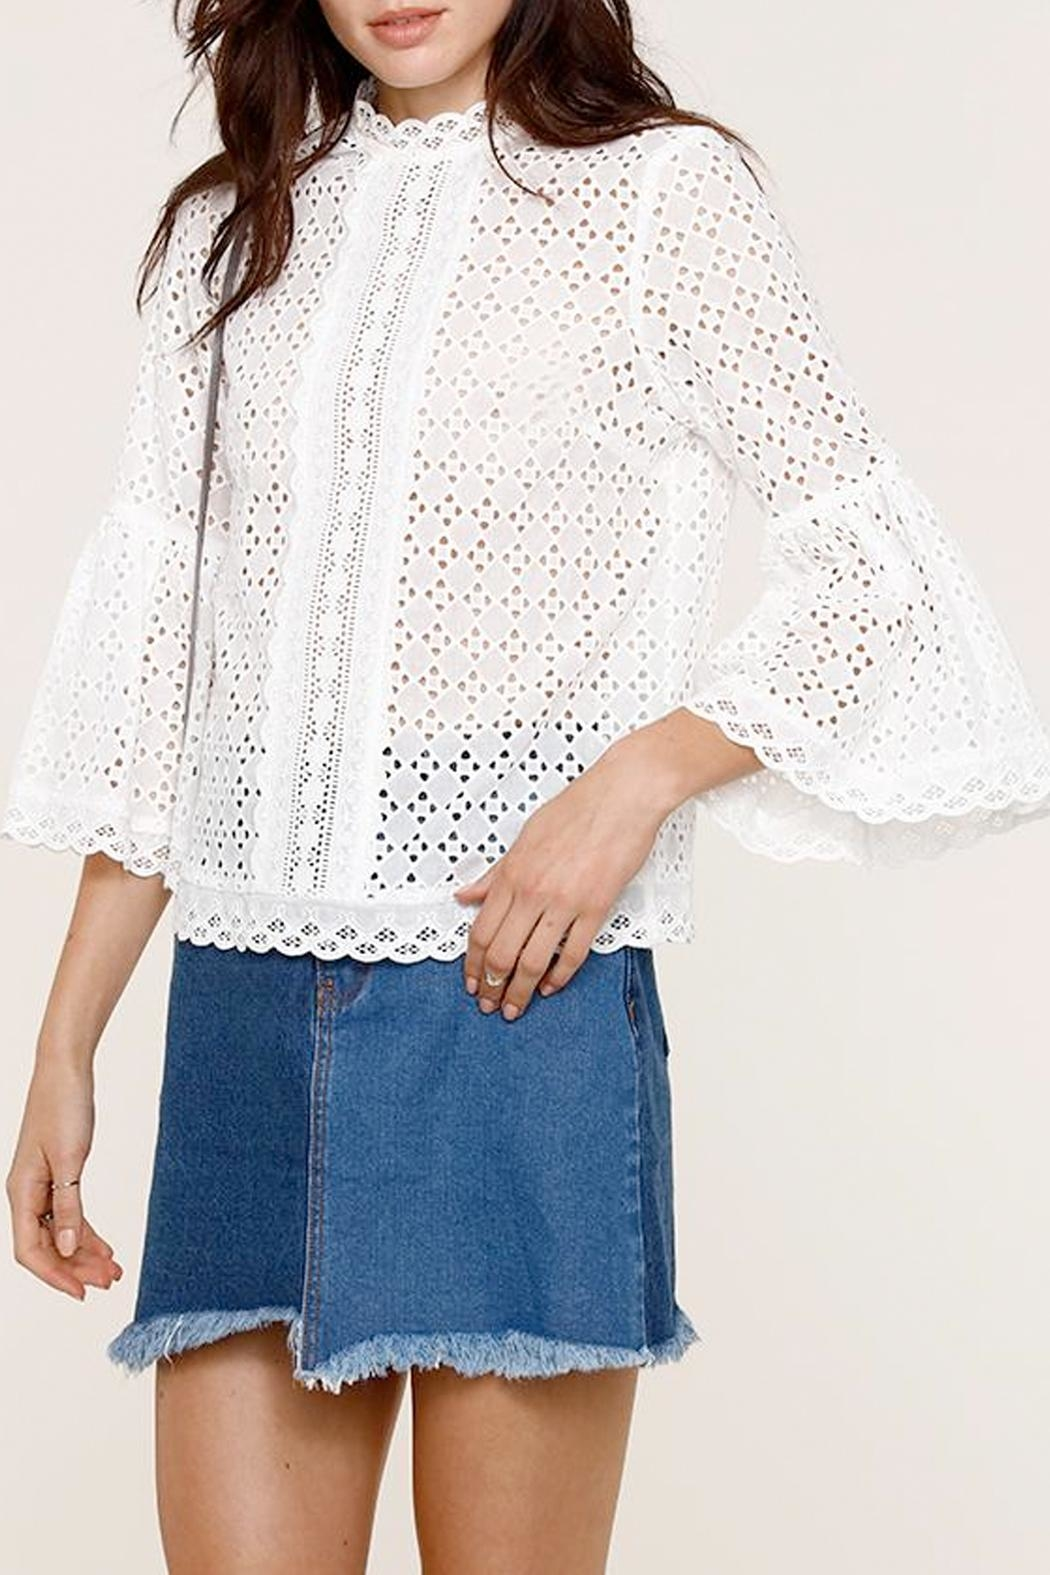 Heartloom Elis Eyelet Top - Front Cropped Image